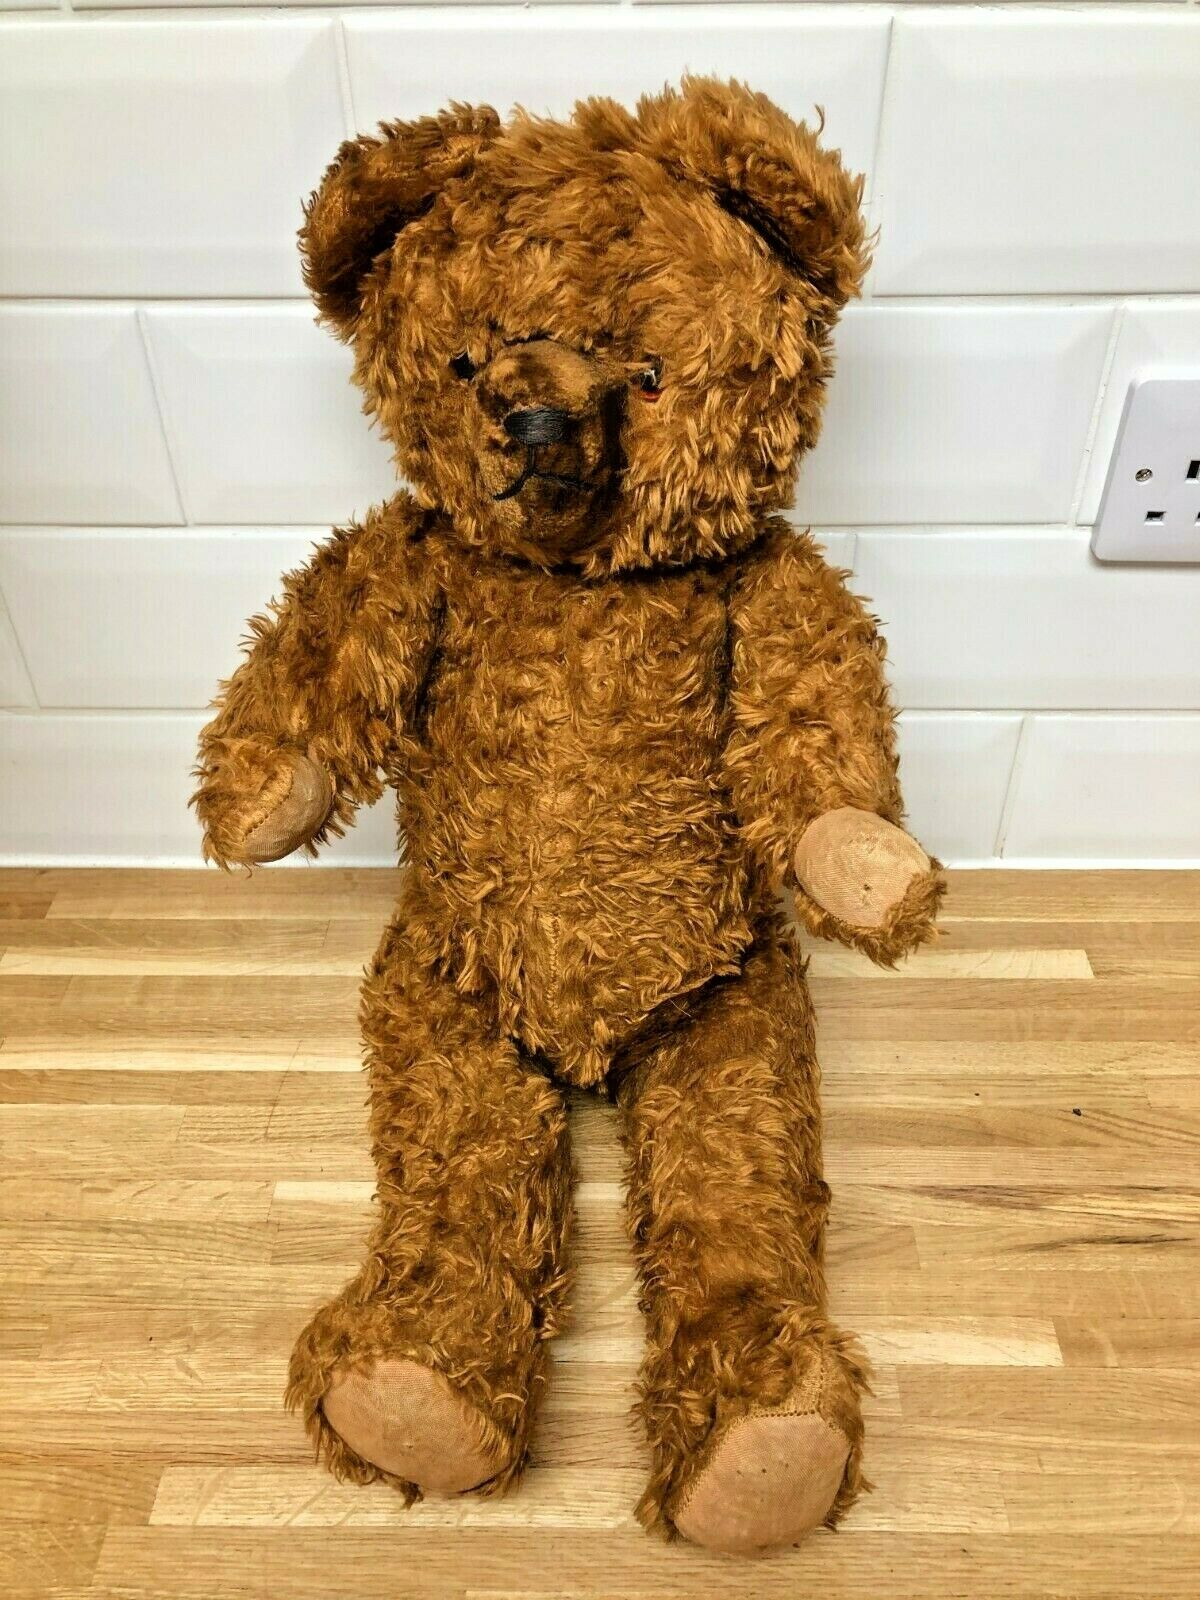 Vintage 1950s Straw Filled Jointed TEDDY BEAR - 24